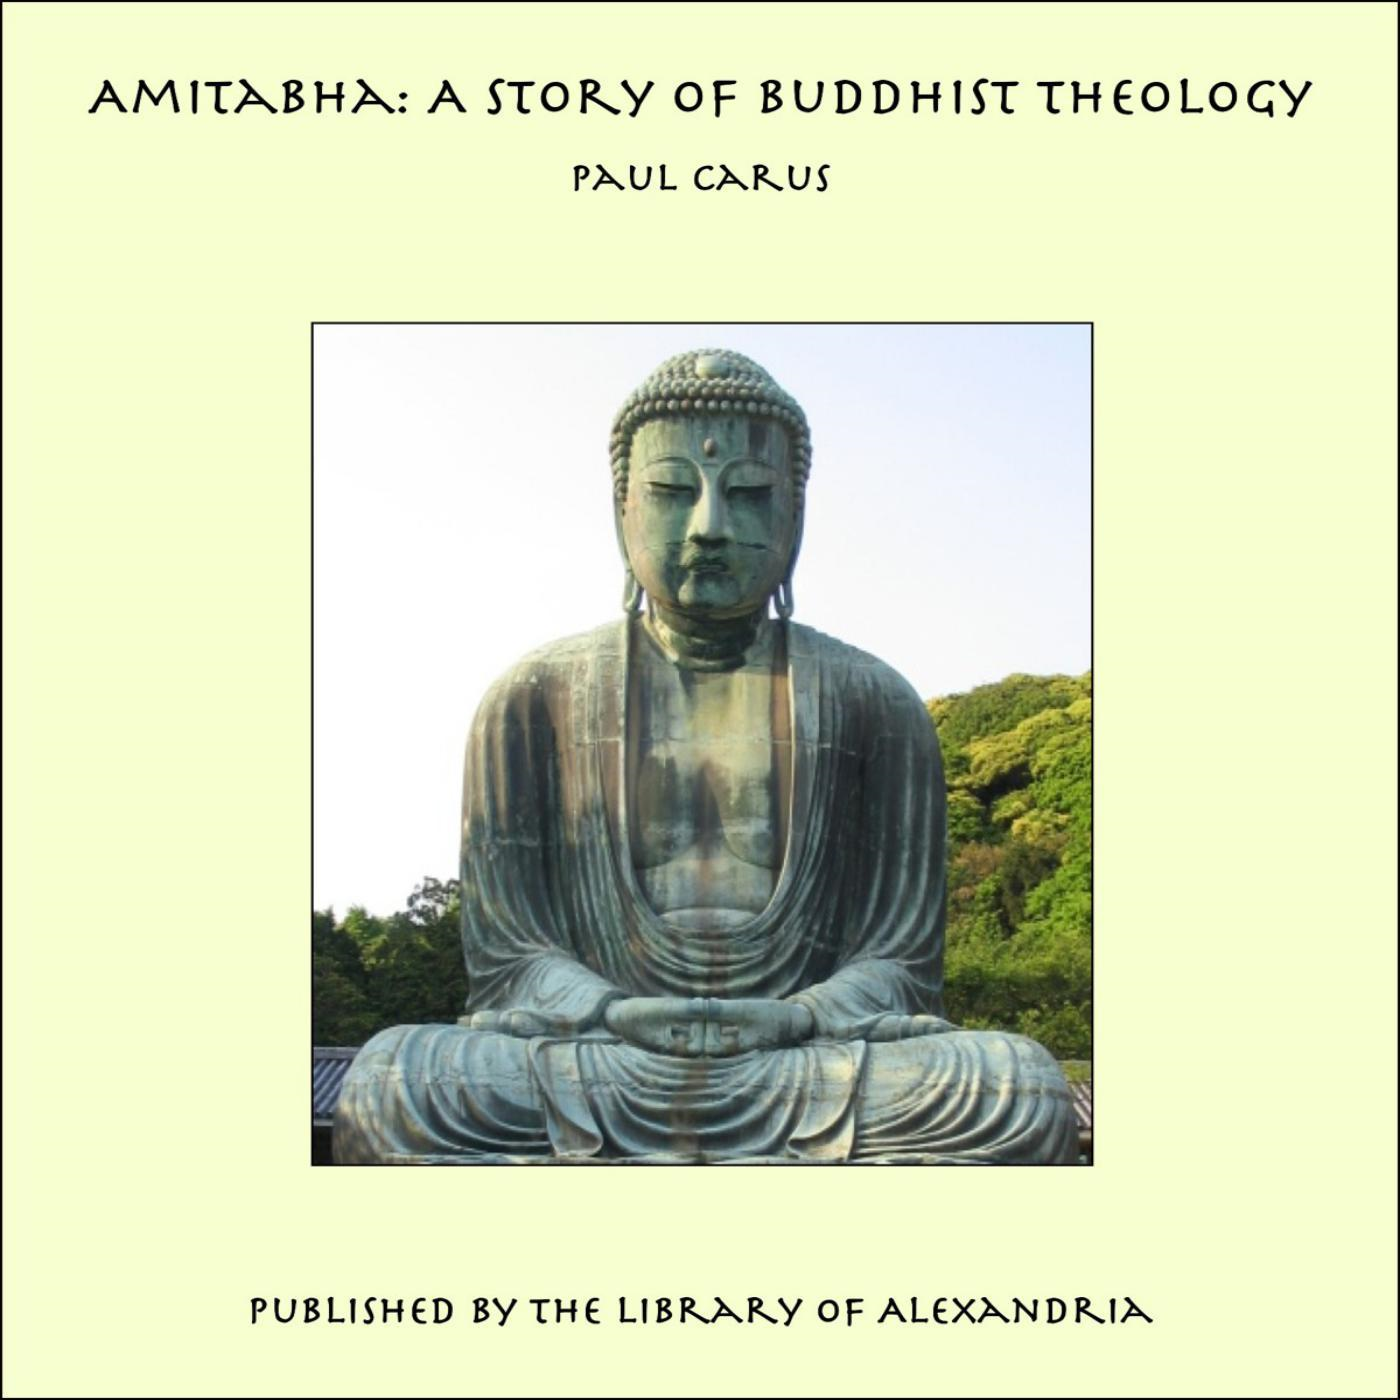 Amitabha: A Story of Buddhist Theology By: Paul Carus